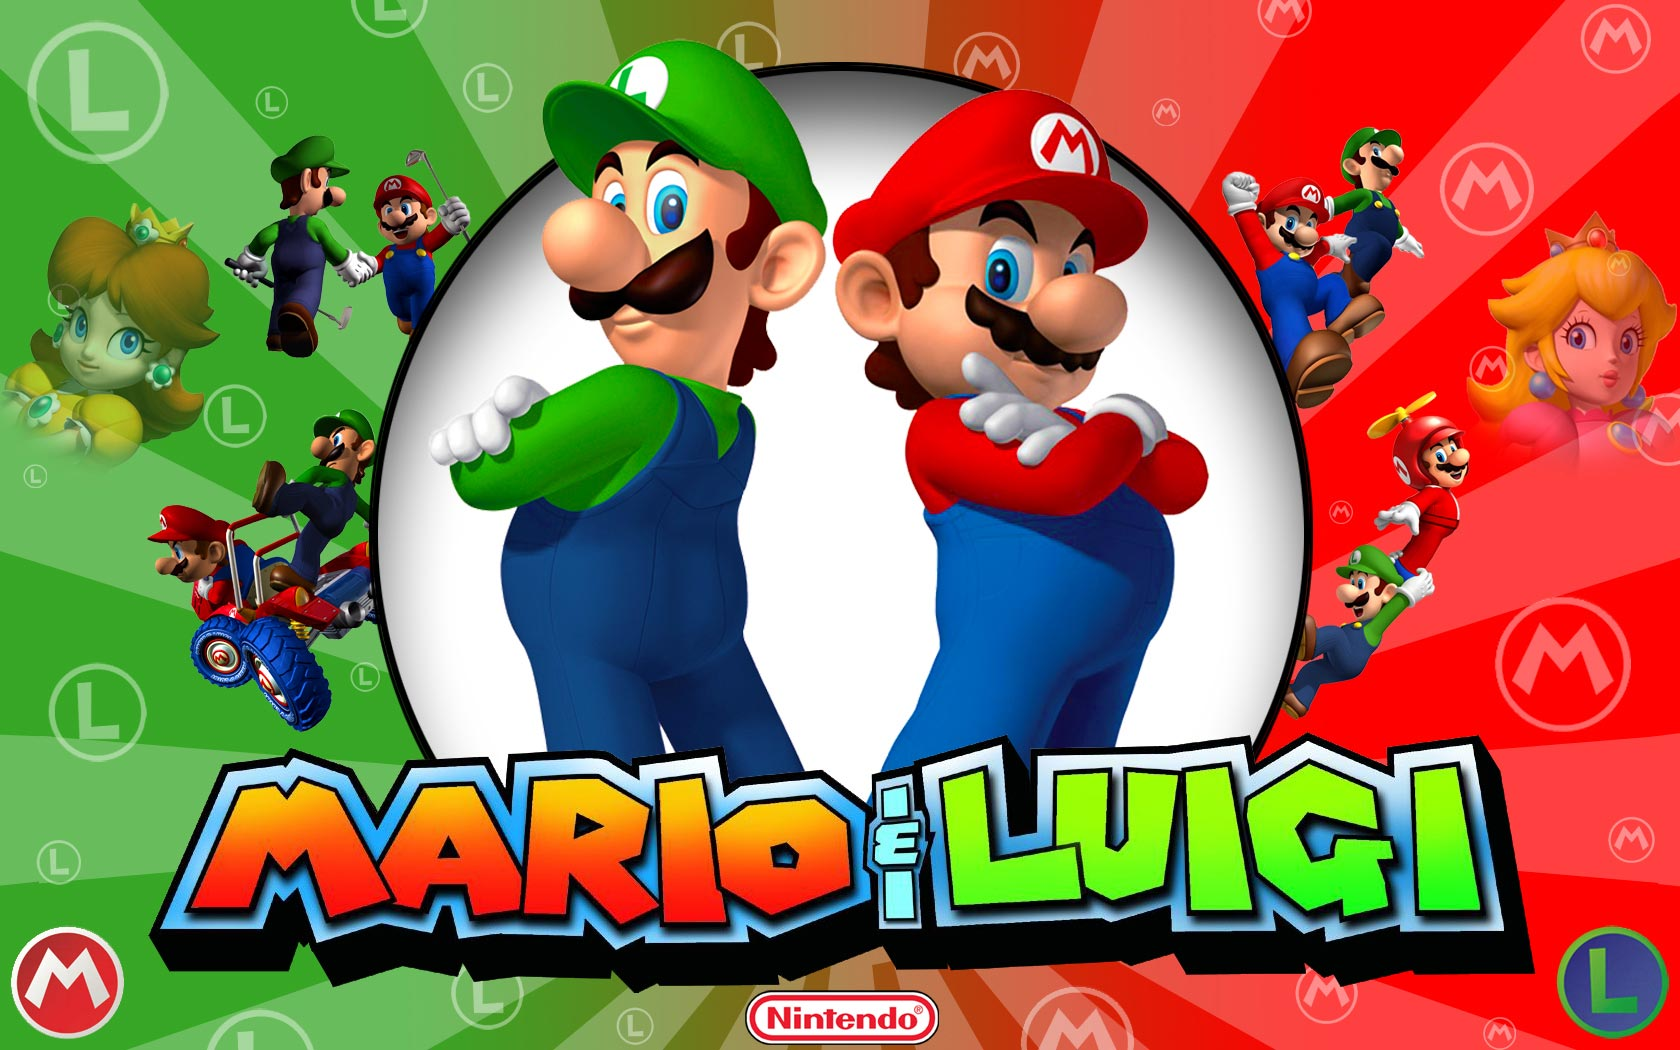 Mario-and-Luigi-super-mario-bros-32564041-1680-1050